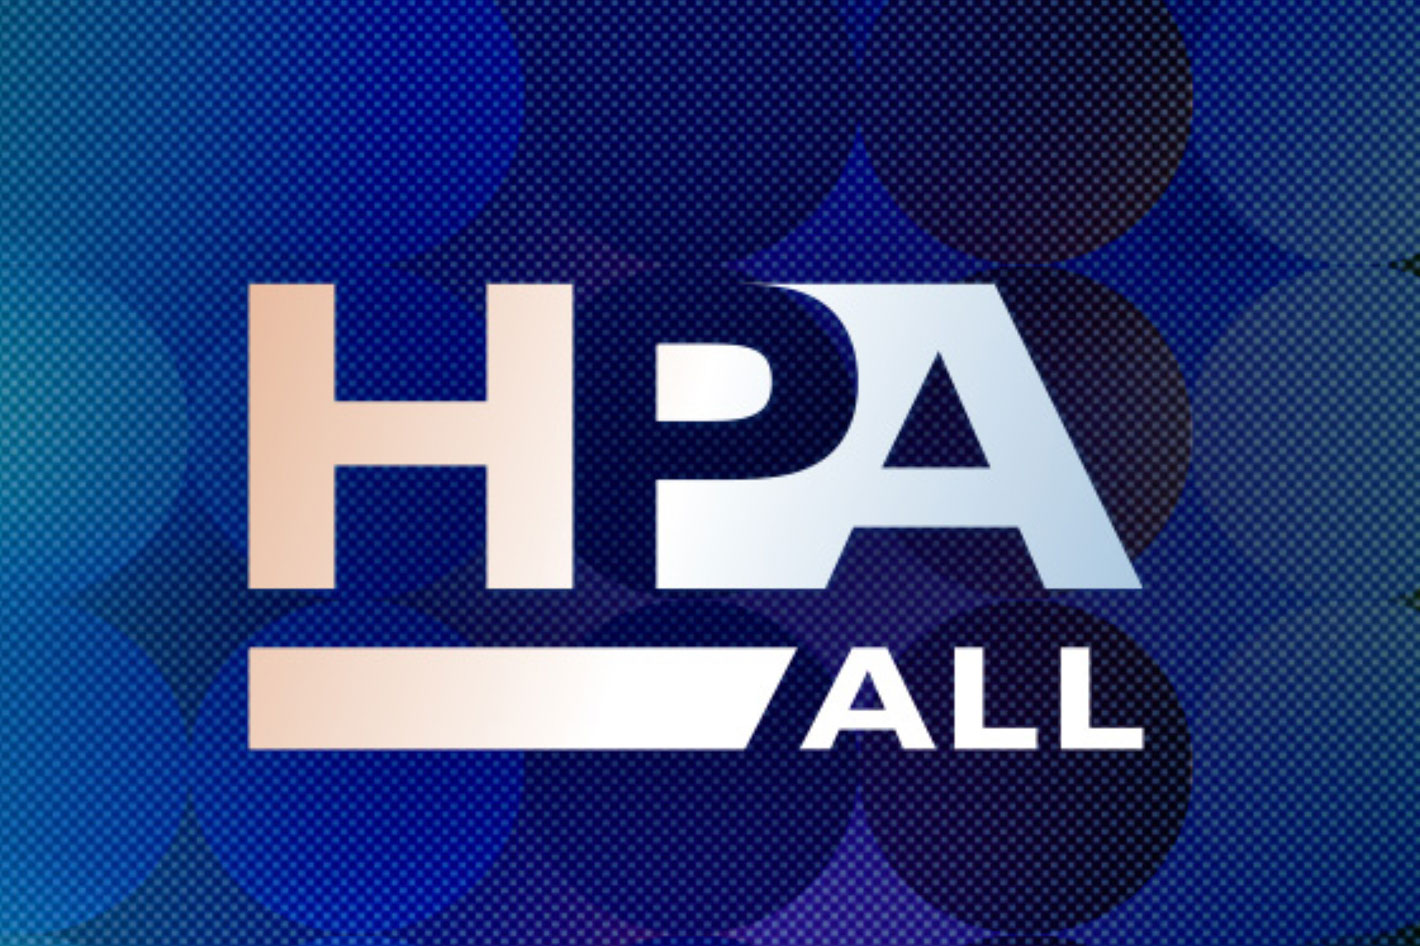 Hollywood Professional Association announces ALL IN, free virtual event